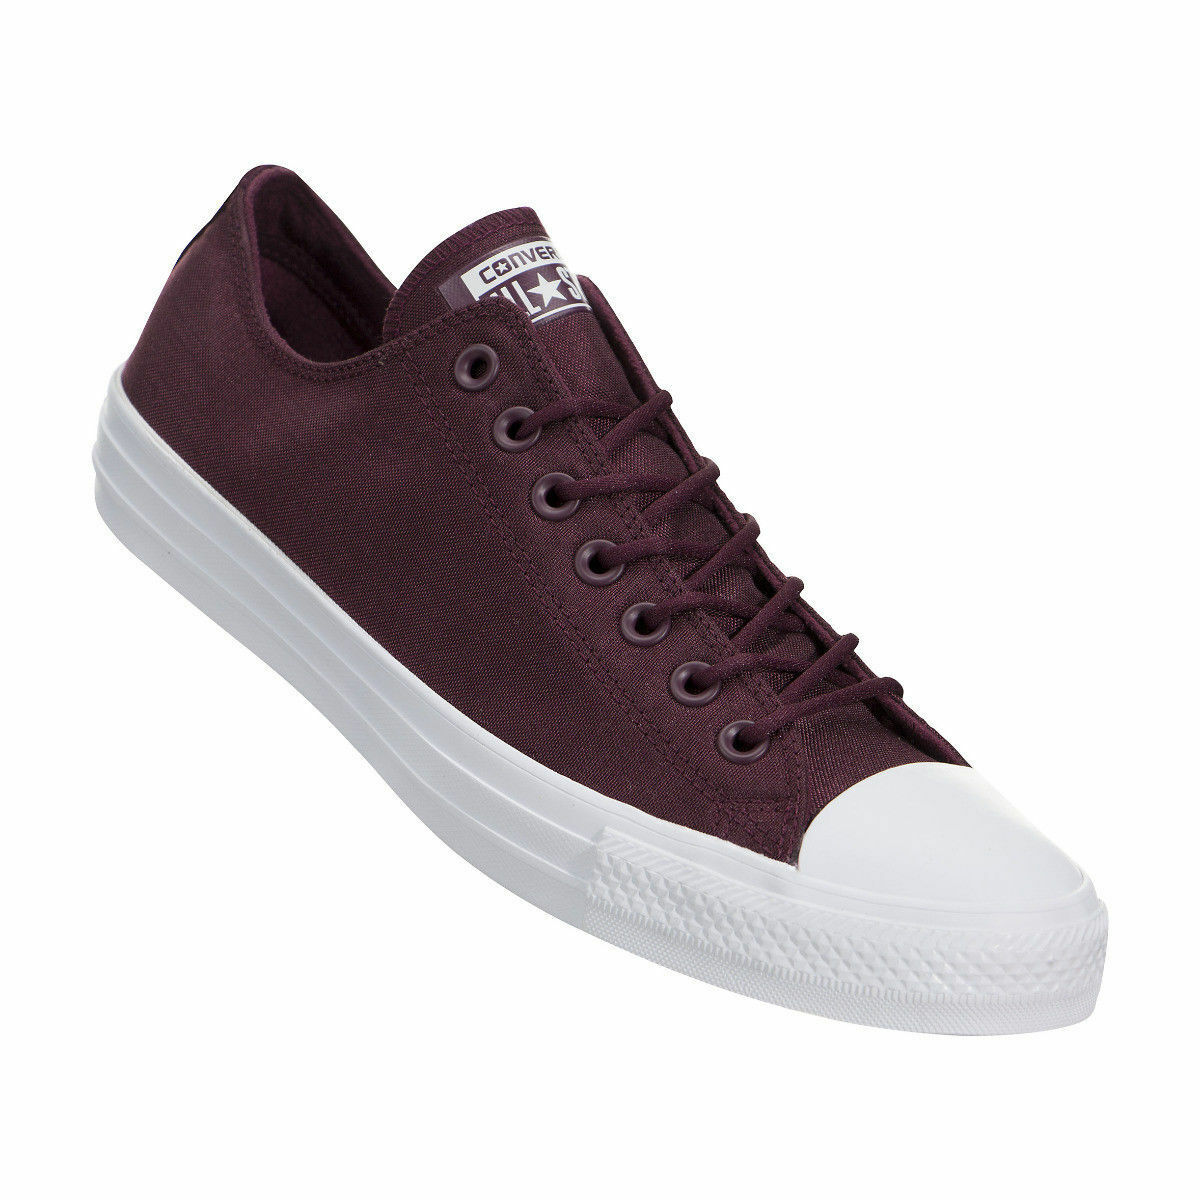 CONVERSE ALL STAR CHUCK TAYLOR LOW Uomo SHOES DARK SANGRIA 157595F SIZE 10.5 NEW